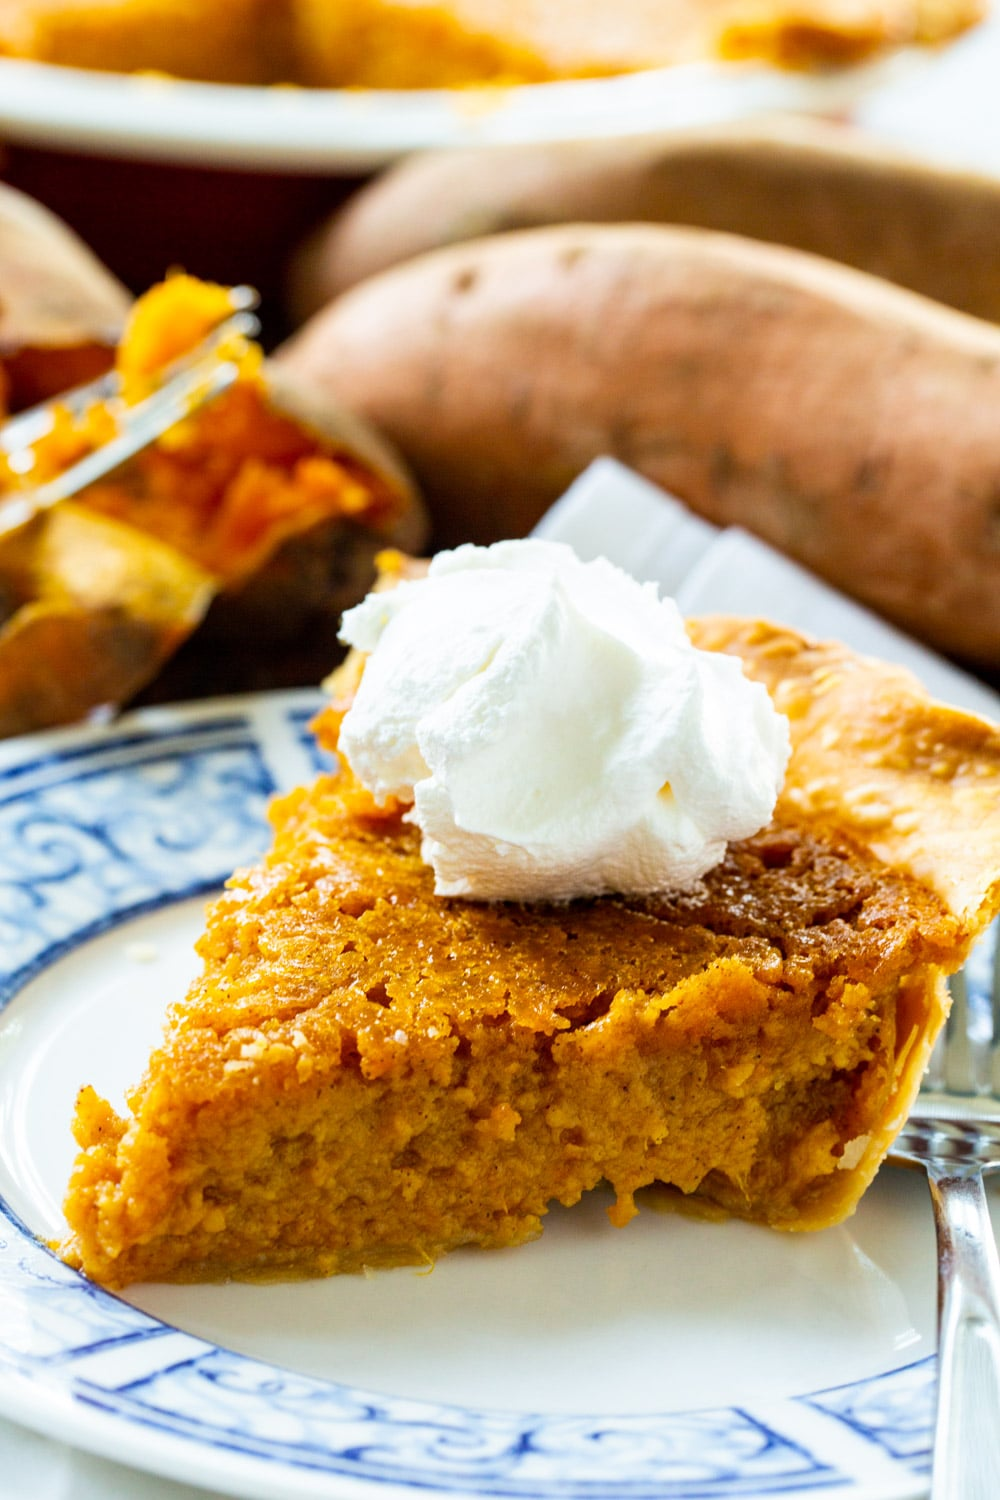 Southern Sweet Potato Pie slice topped with whipped cream.